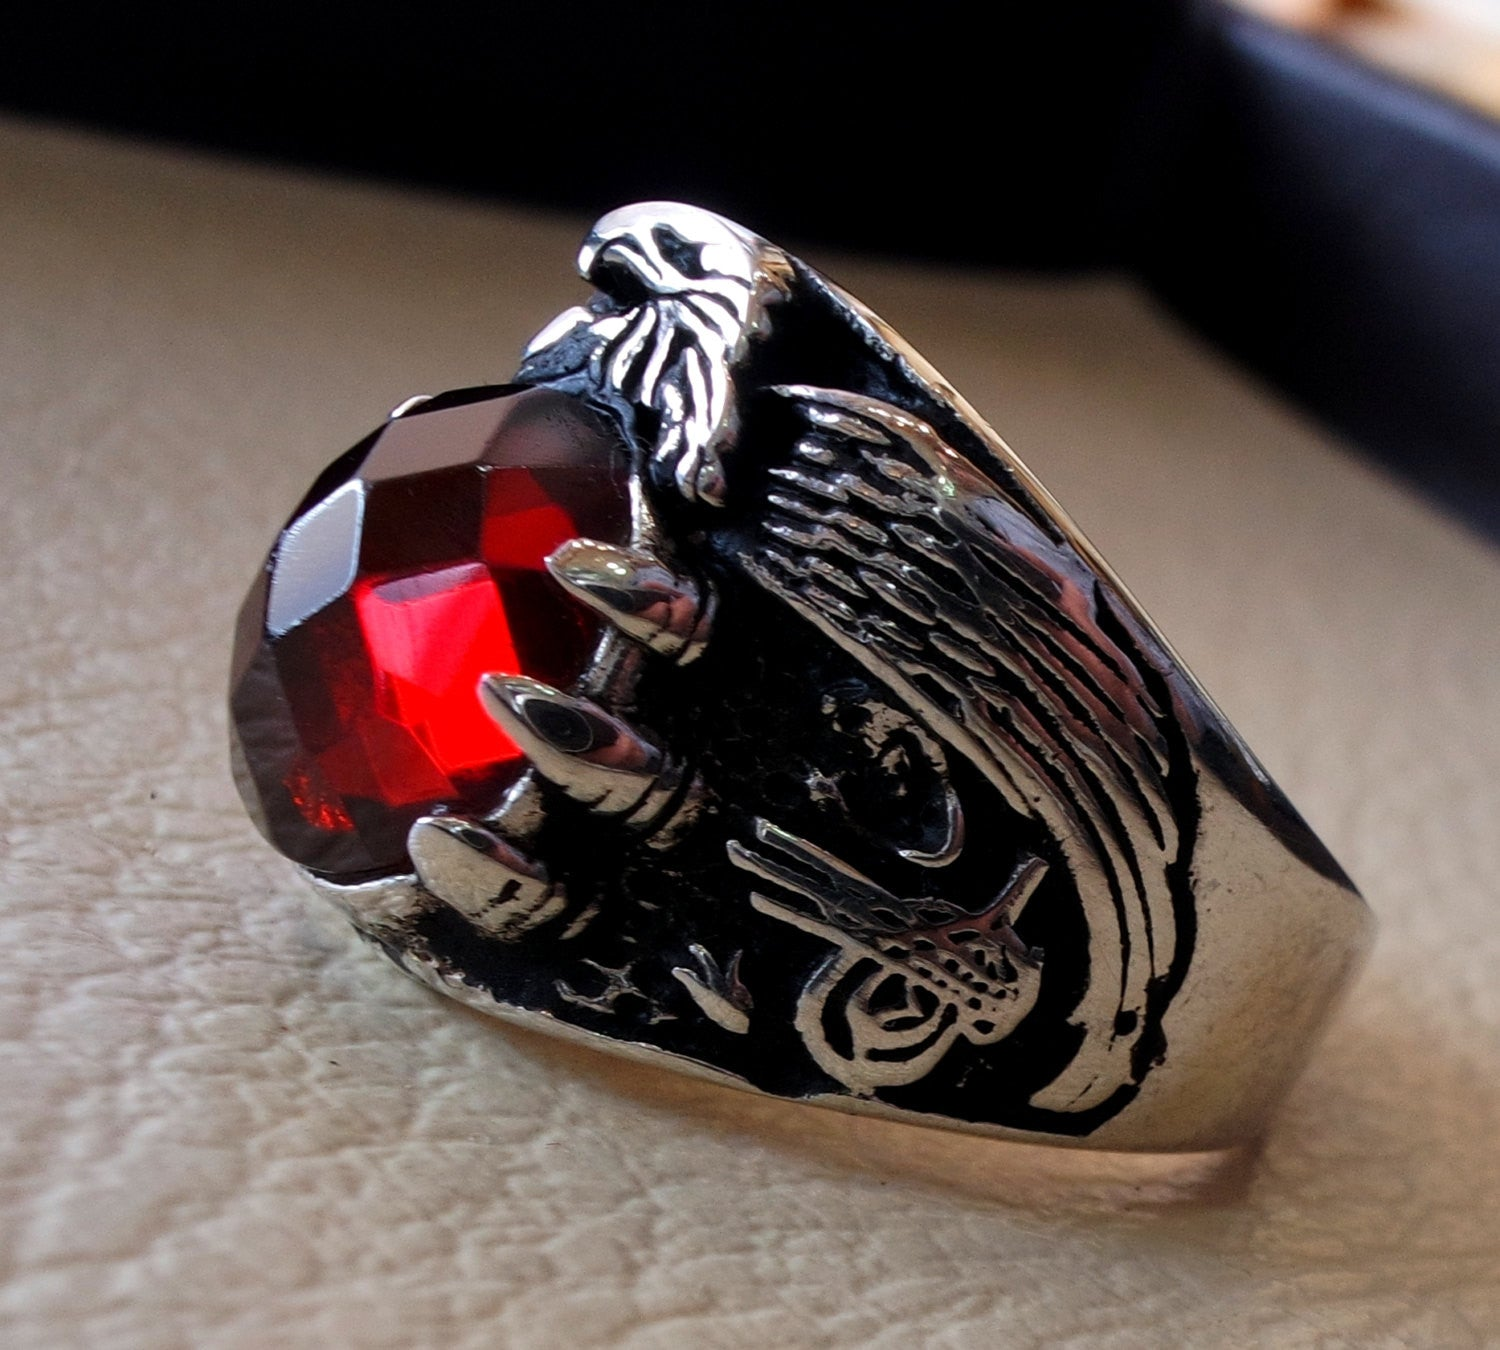 red ruby imitation oval stone arabic men ring sterling silver 925 eagle arabic ottoman symbols turkish jewelry style all sizes fast shipping